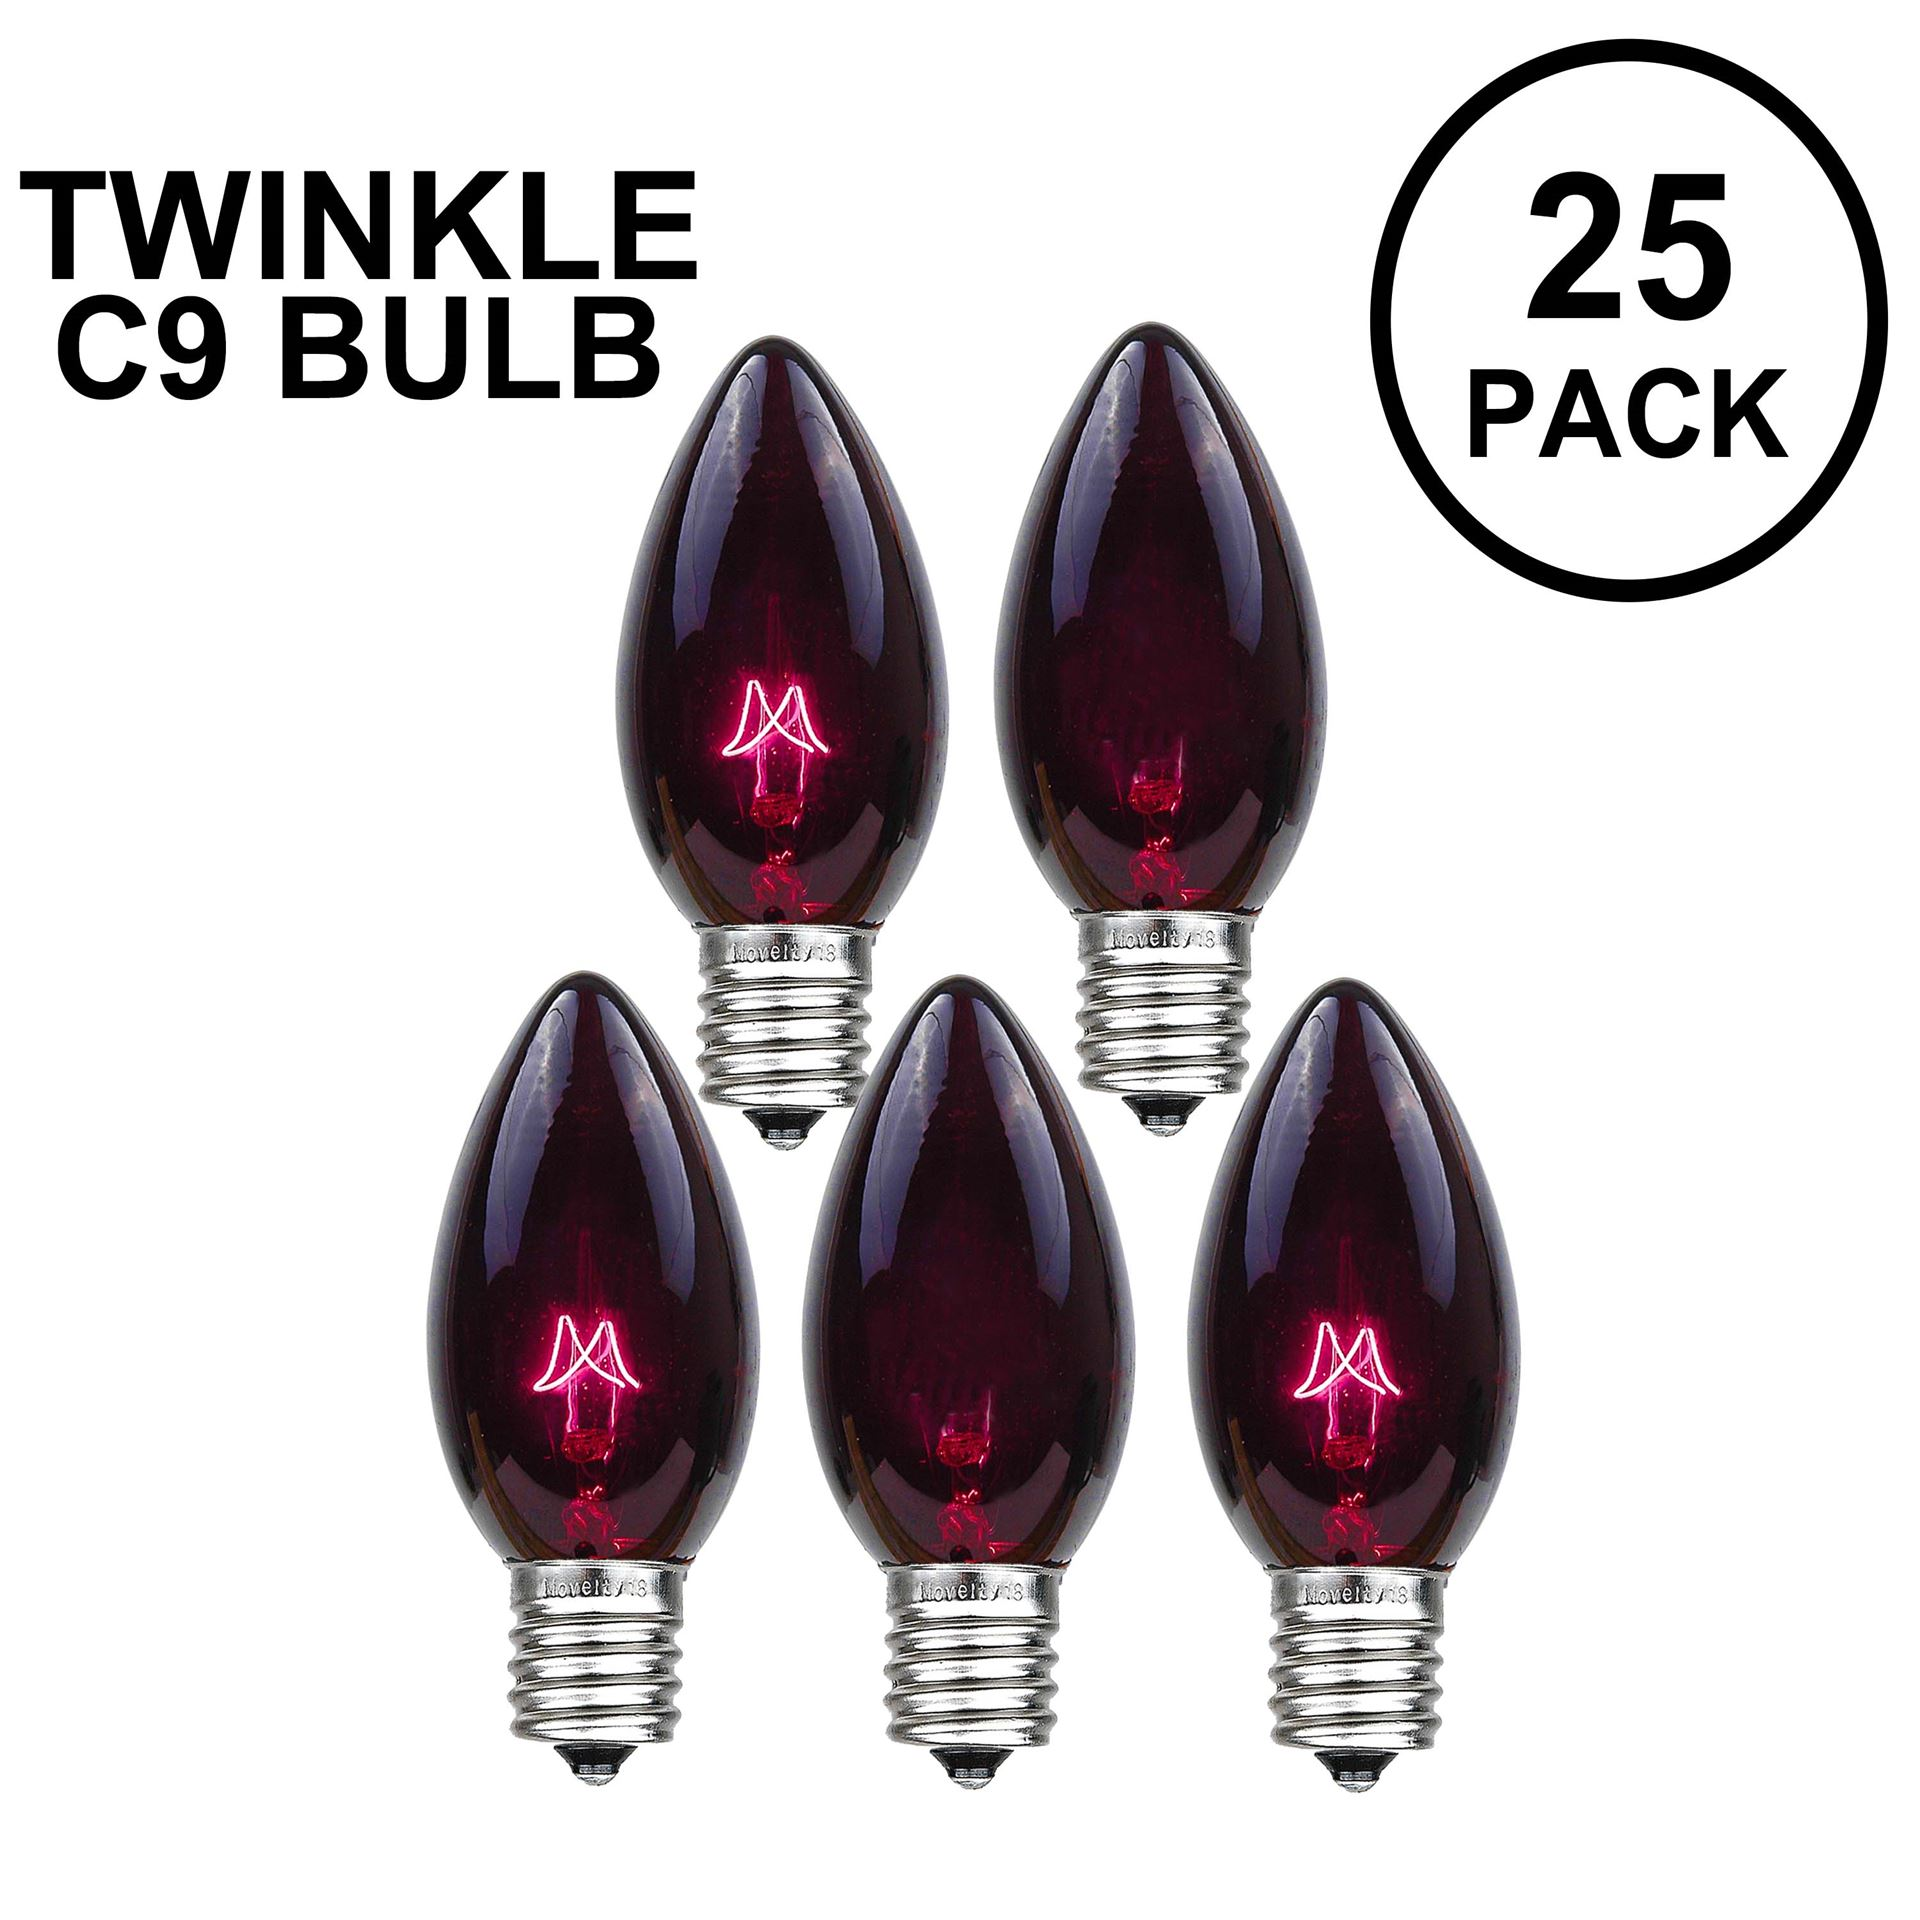 Picture of Black Light Twinkle C9 Bulbs 7 Watt Replacement Lamps 25 Pack